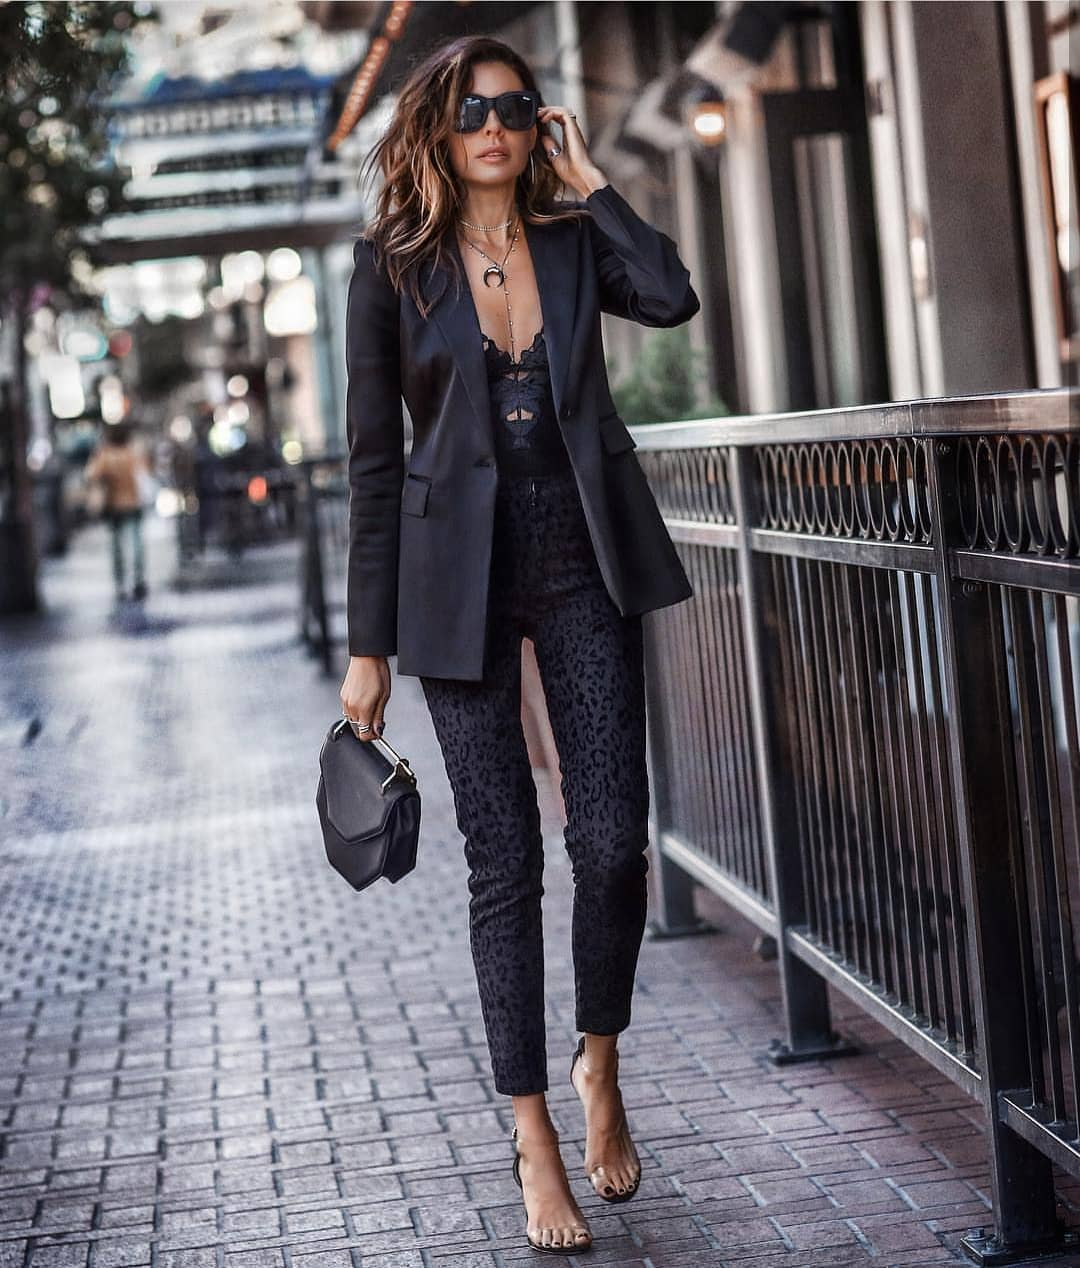 Black Blazer With Black Bodysuit And Leopard Print Black Pants For Fall 2019